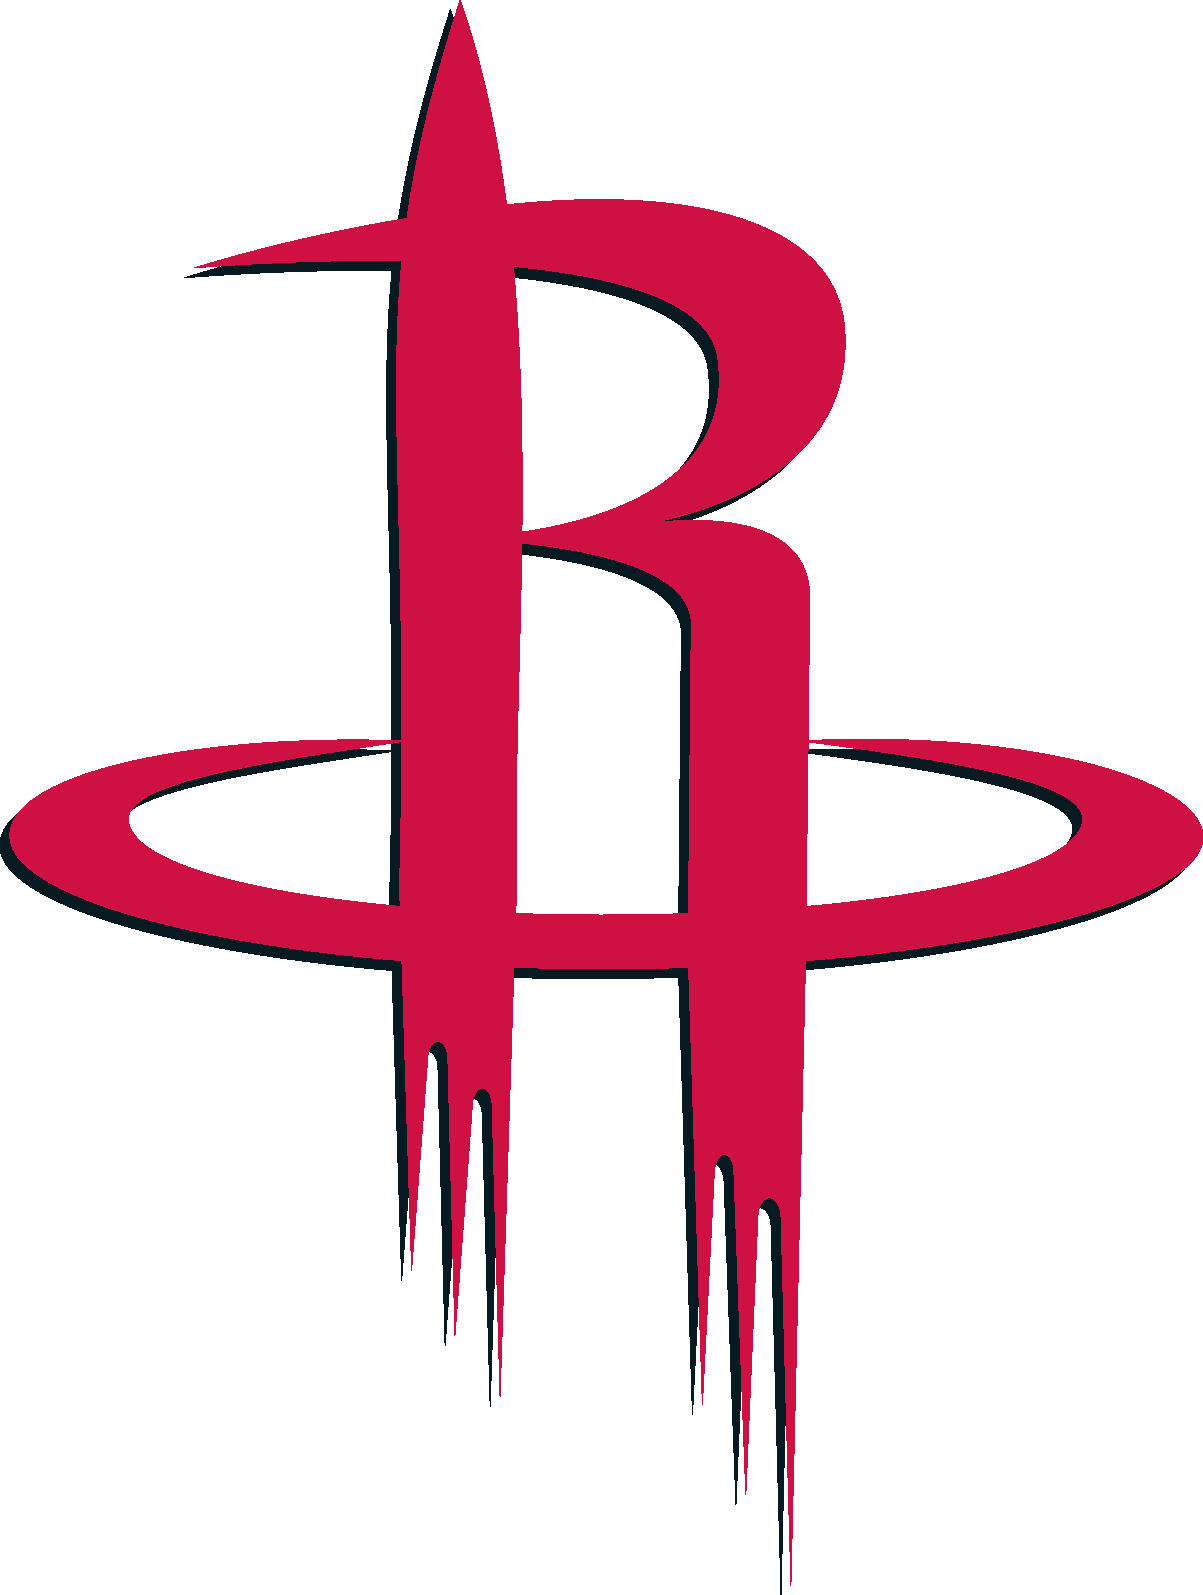 Houston rockets logo png. Nba team logos pinterest